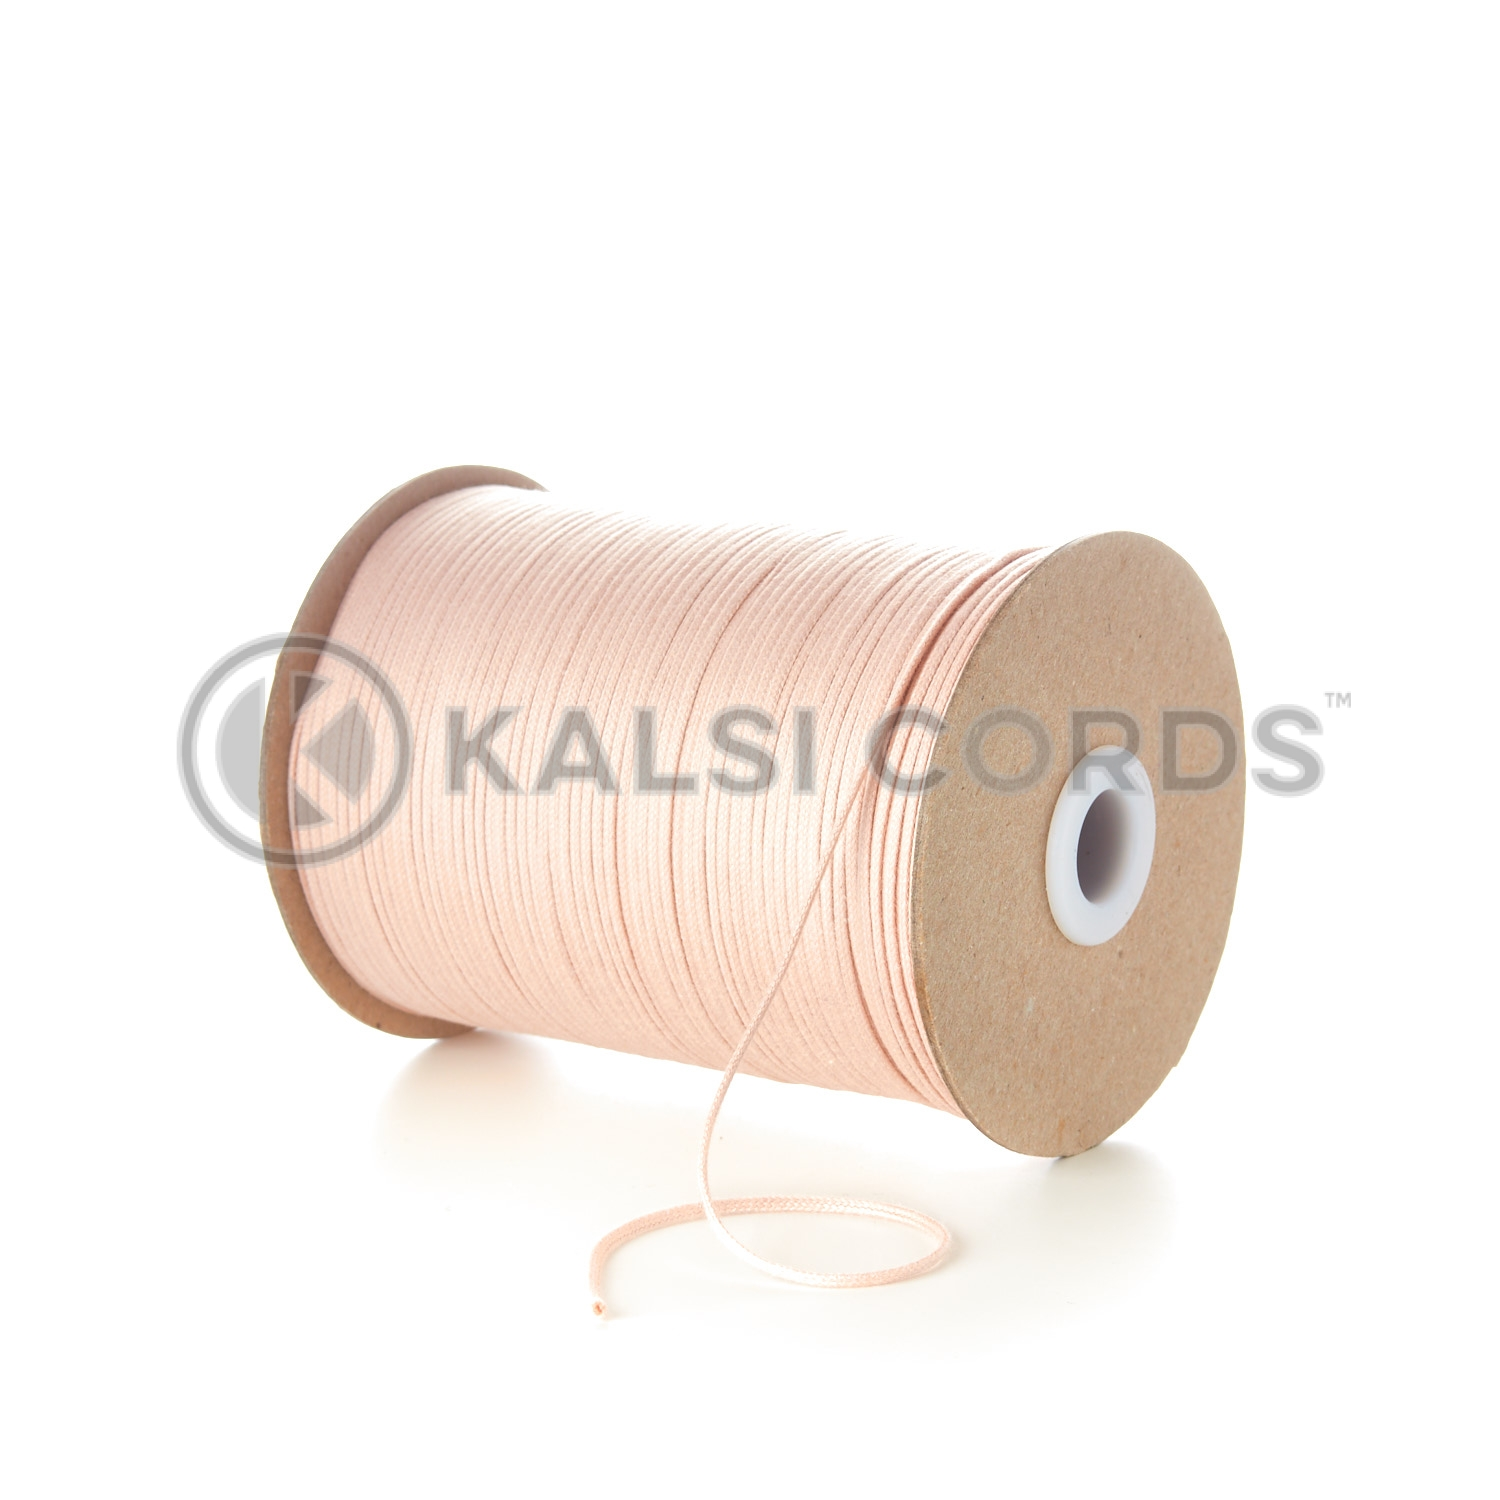 Pink 2mm Round Cotton Cord Thin Tubular Braided String Swing Tags C156 Kalsi Cords